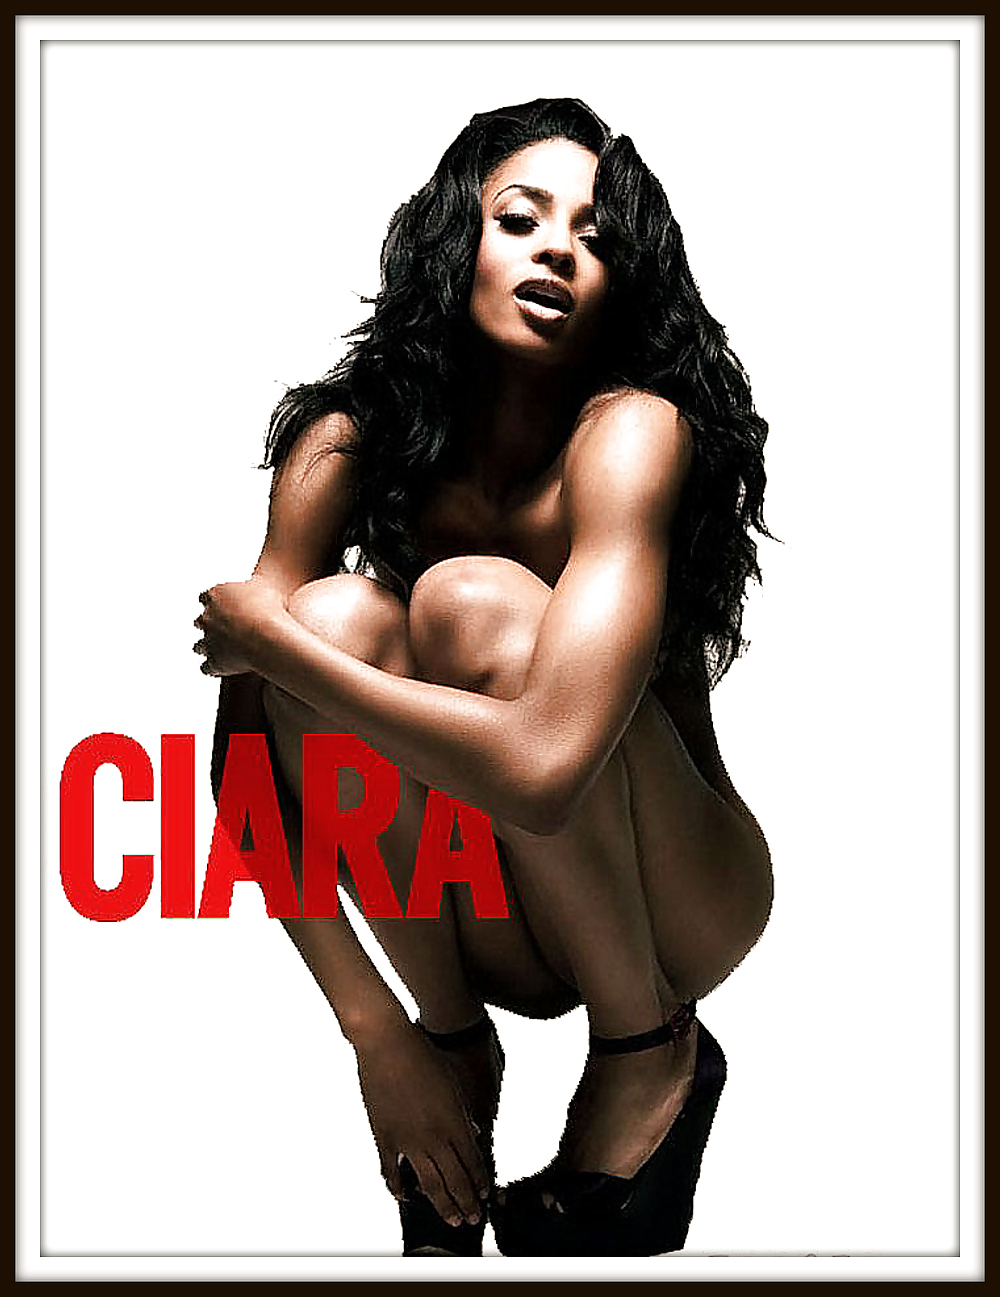 ciara-the-singer-naked-pussy-sexting-college-fucking